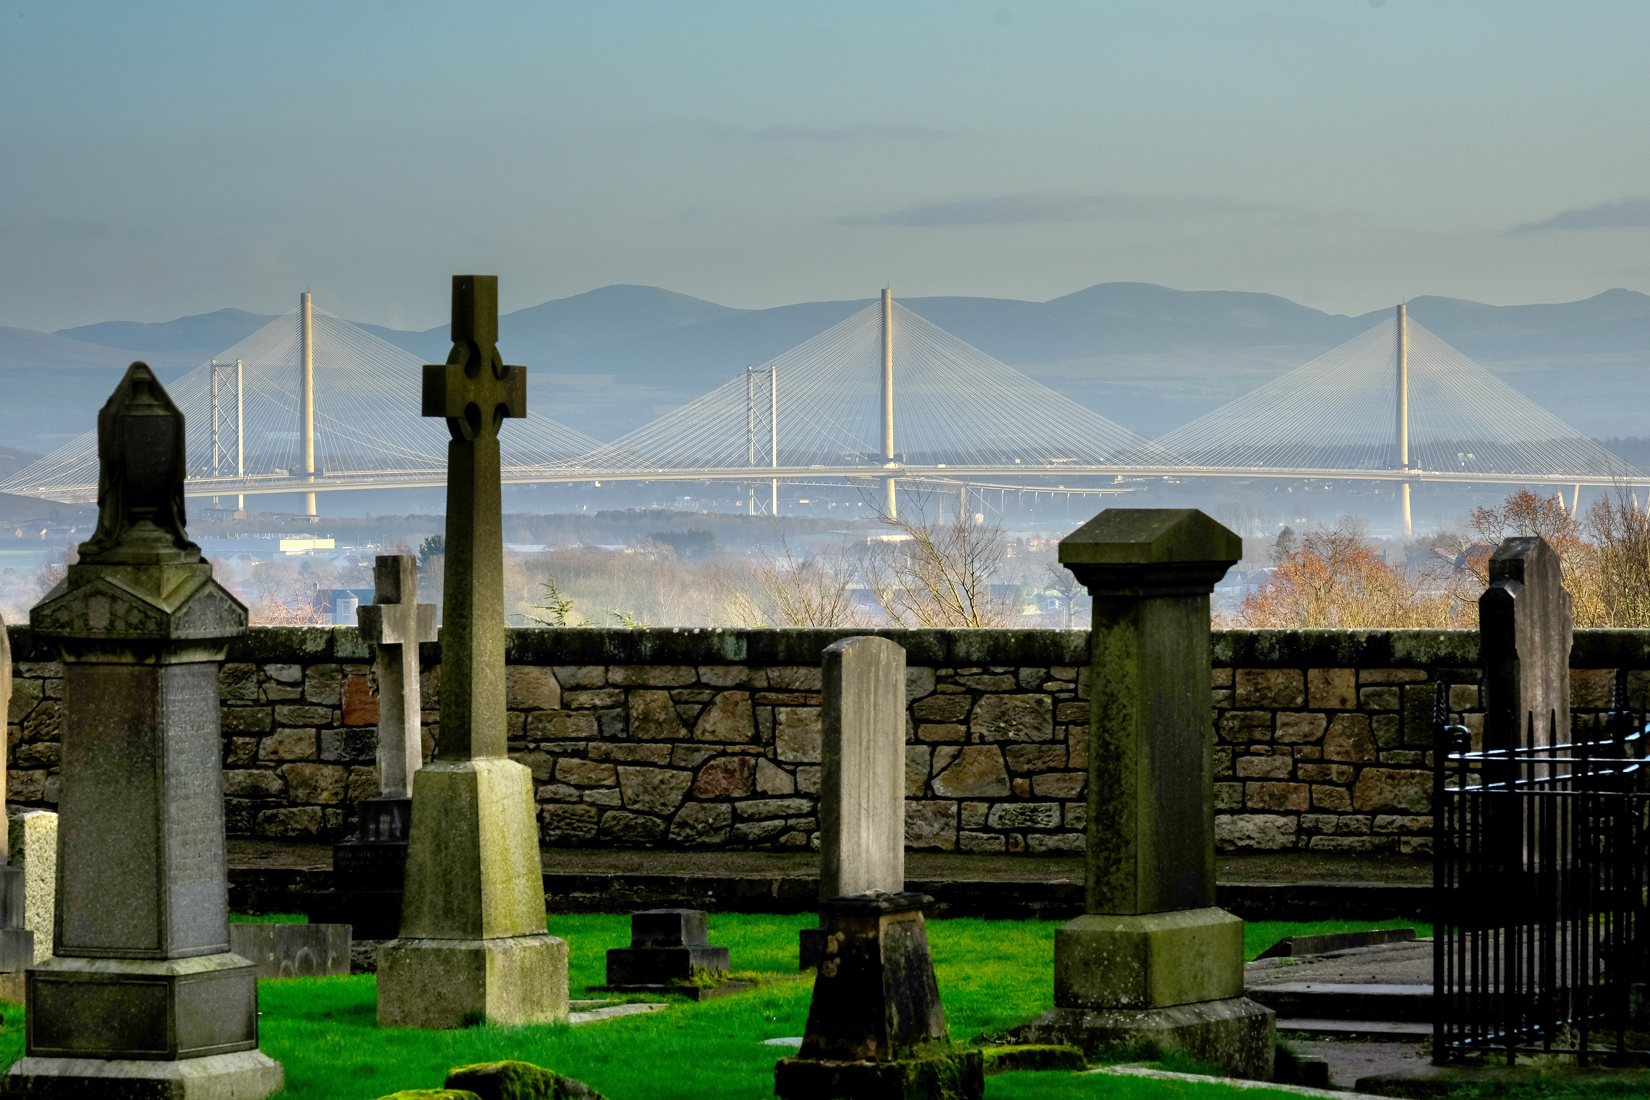 Grave stones in foreground and graveyard boundary wall. In the distance bridges across the Forth. Queensferry Crossing first and behind that Forth Road Bridge. Hills in the distant background